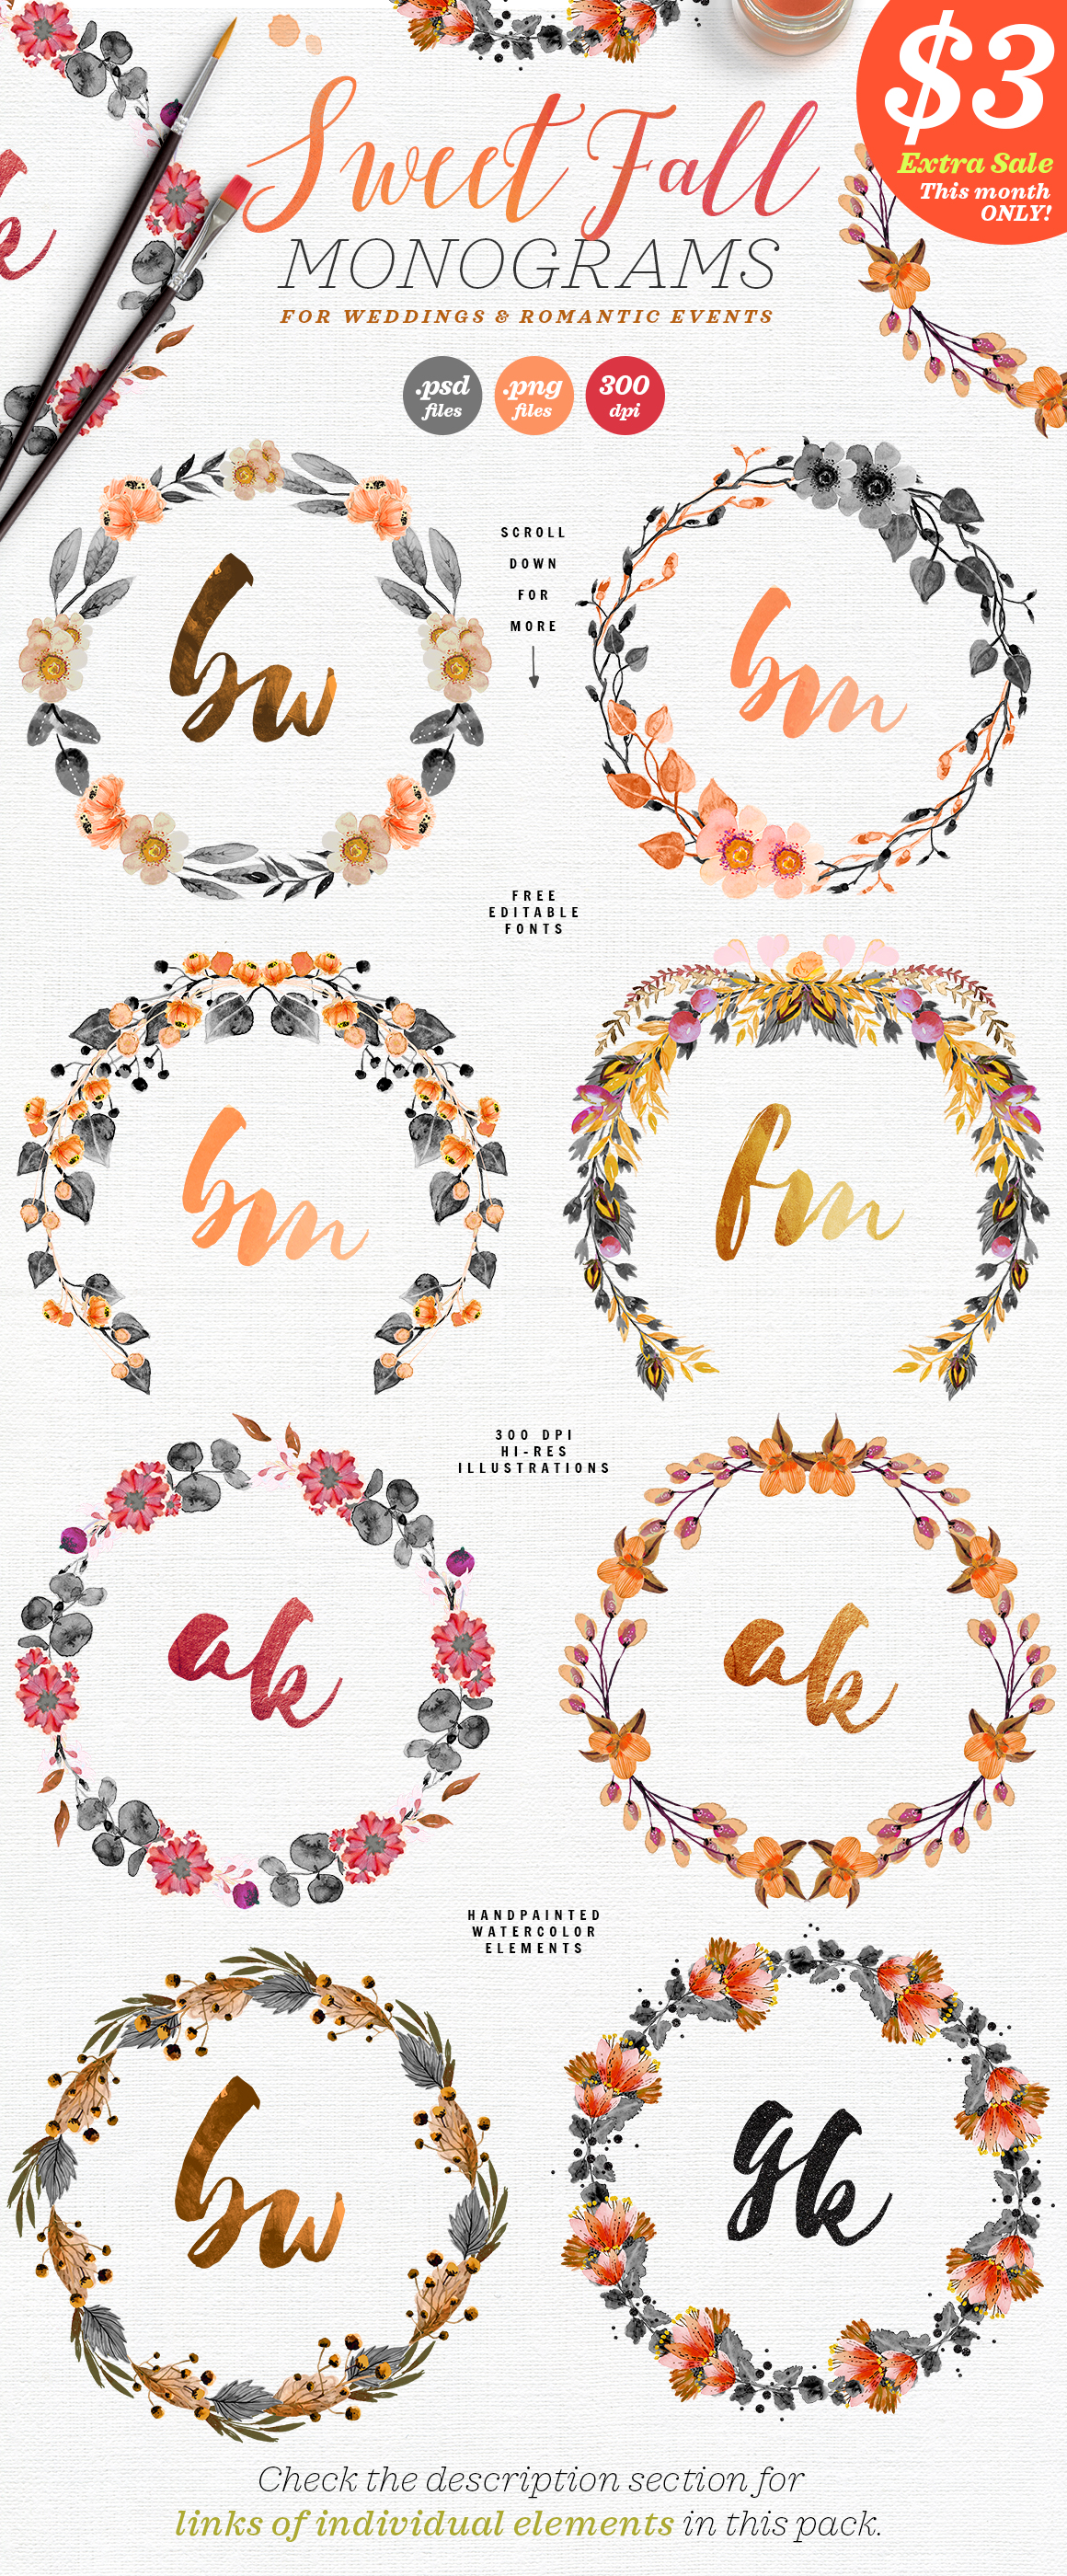 Download Free 8 Sweet Fall Wedding Monograms X Graphic By Lavie1blonde for Cricut Explore, Silhouette and other cutting machines.